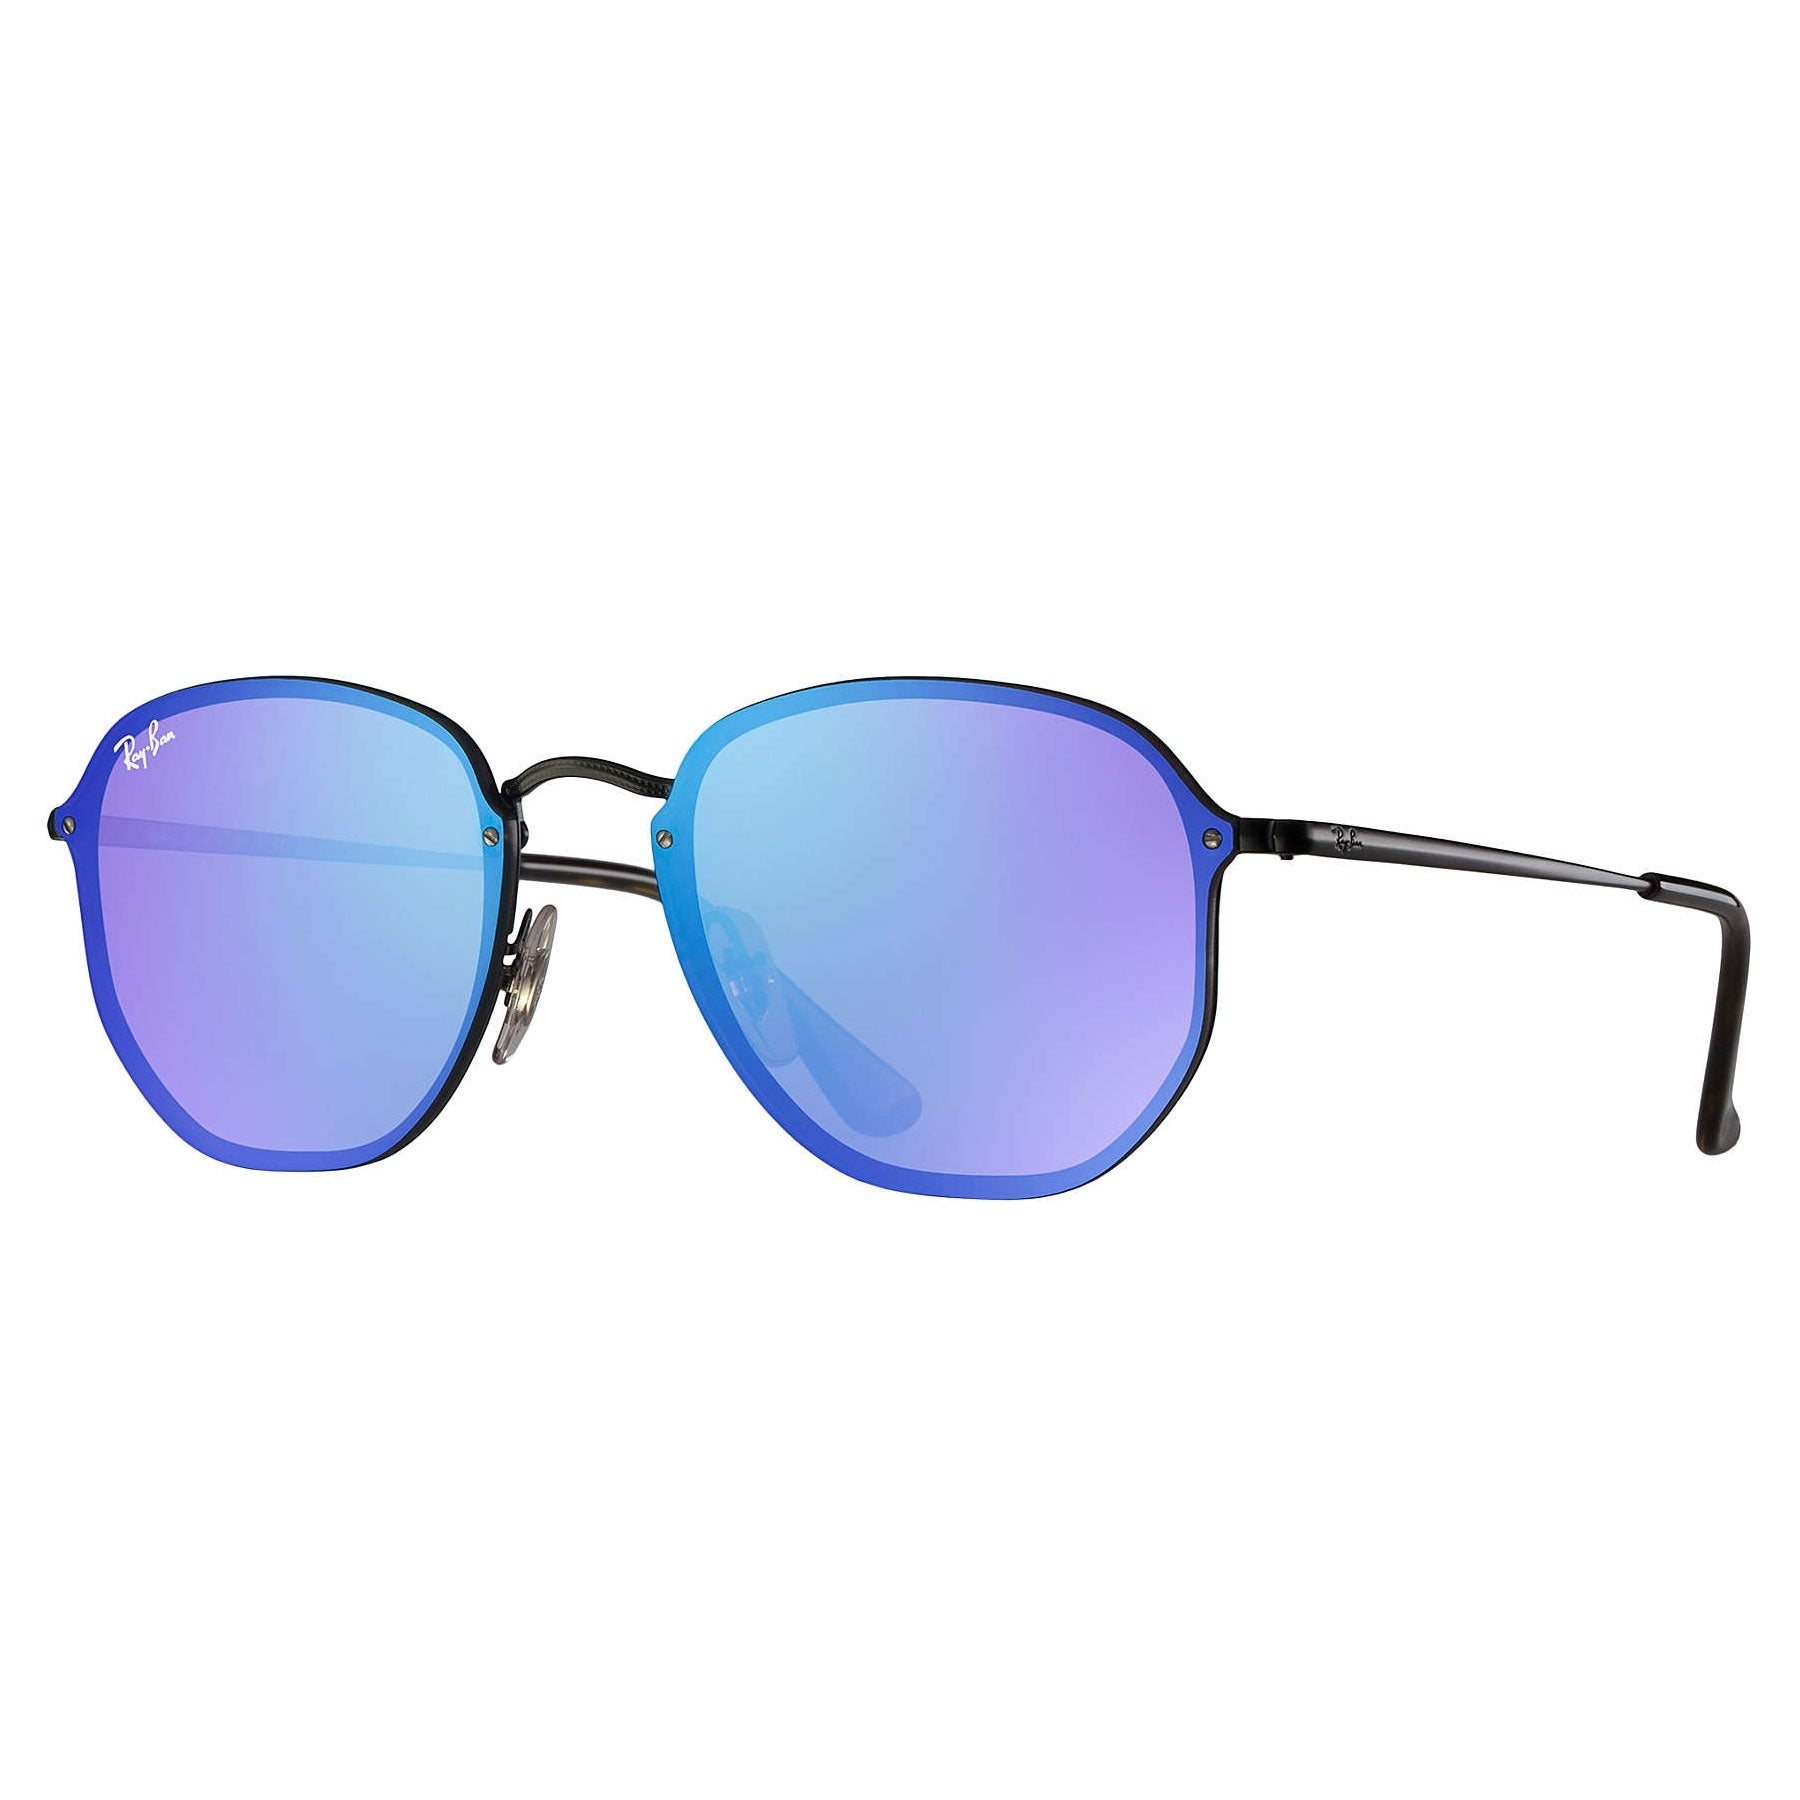 9779e648bd Metal ray-ban Sunglasses